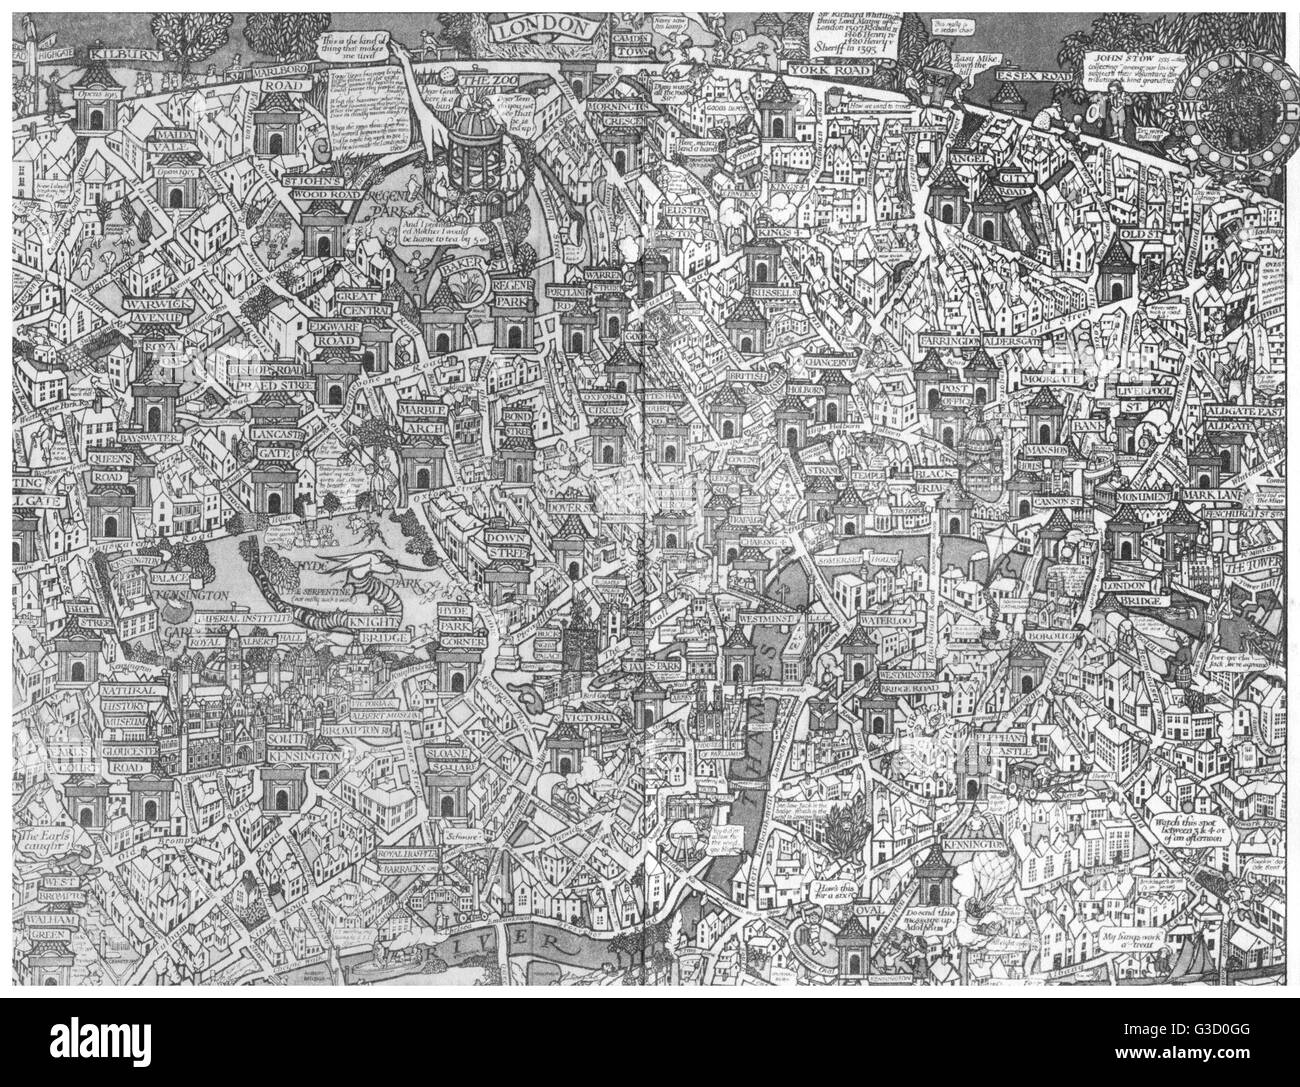 Map of London, showing the River Thames with numerous bridges, parks and major buildings.      Date: 1916 - Stock Image